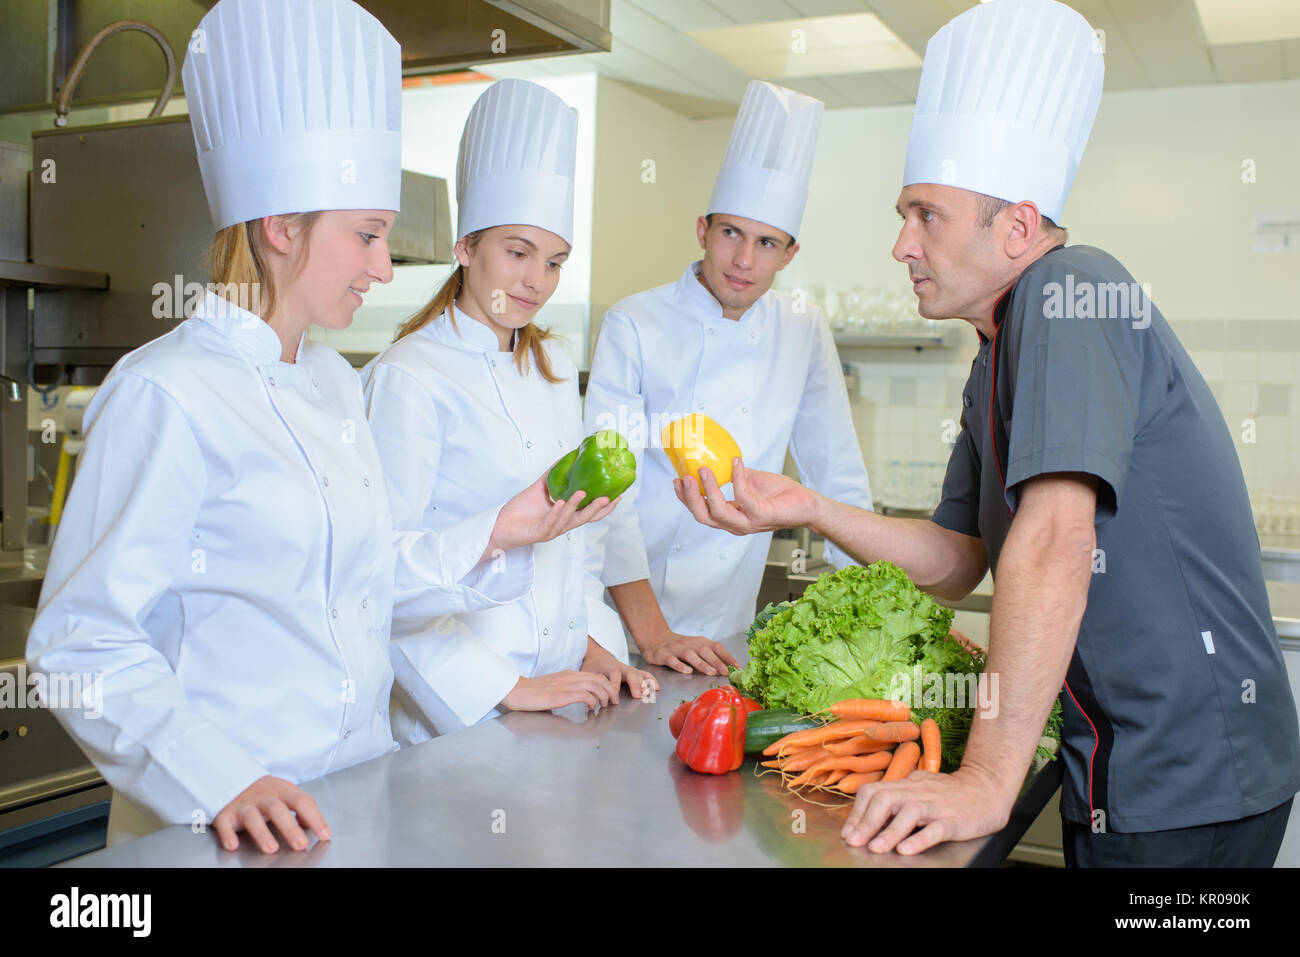 kitchen lecture - Stock Image